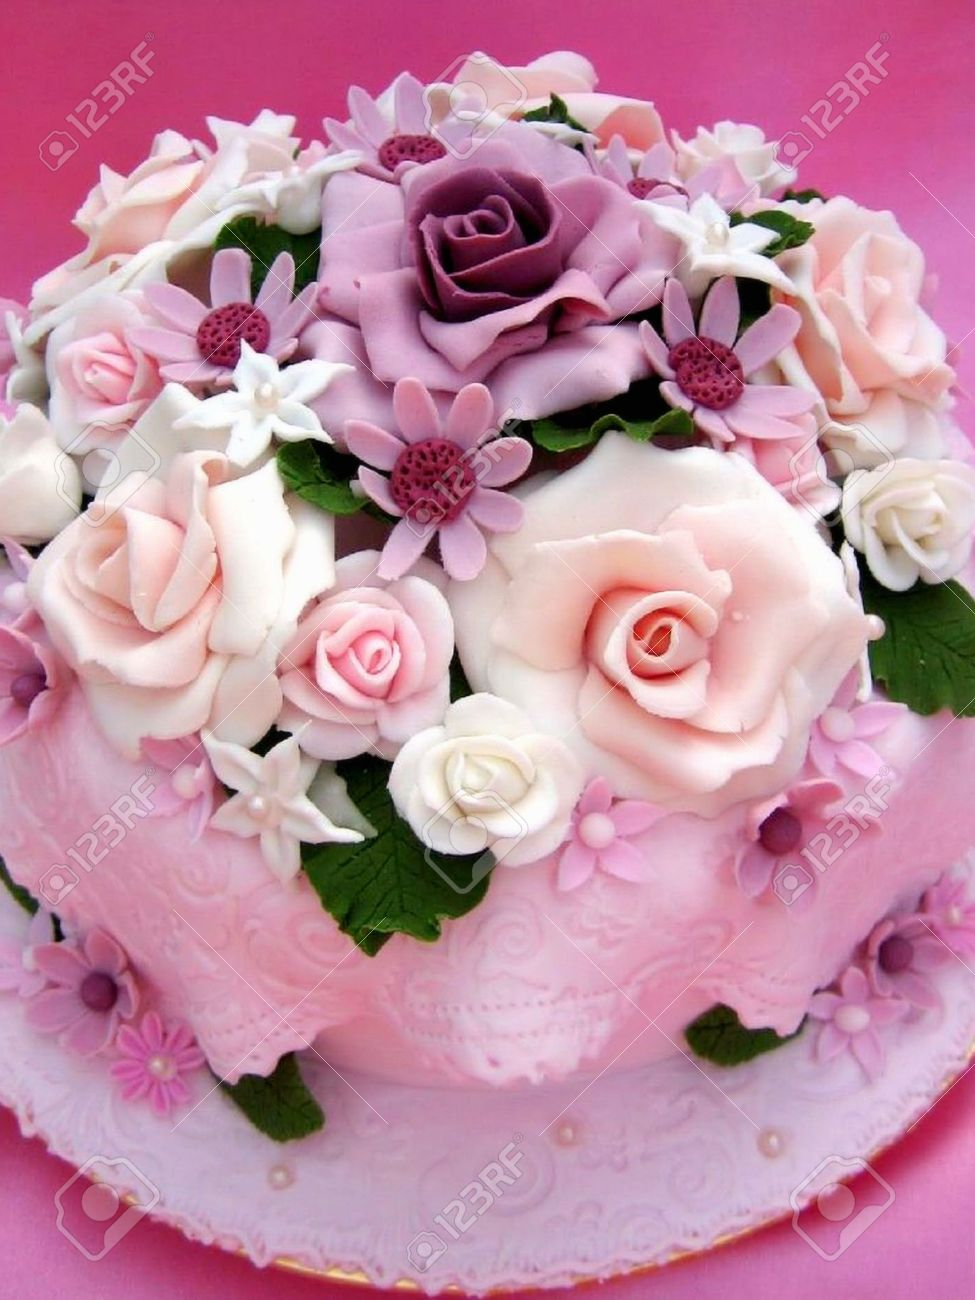 Flower Colorful Birthday Cake Stock Photo Picture And Royalty Free Image Image 5211575